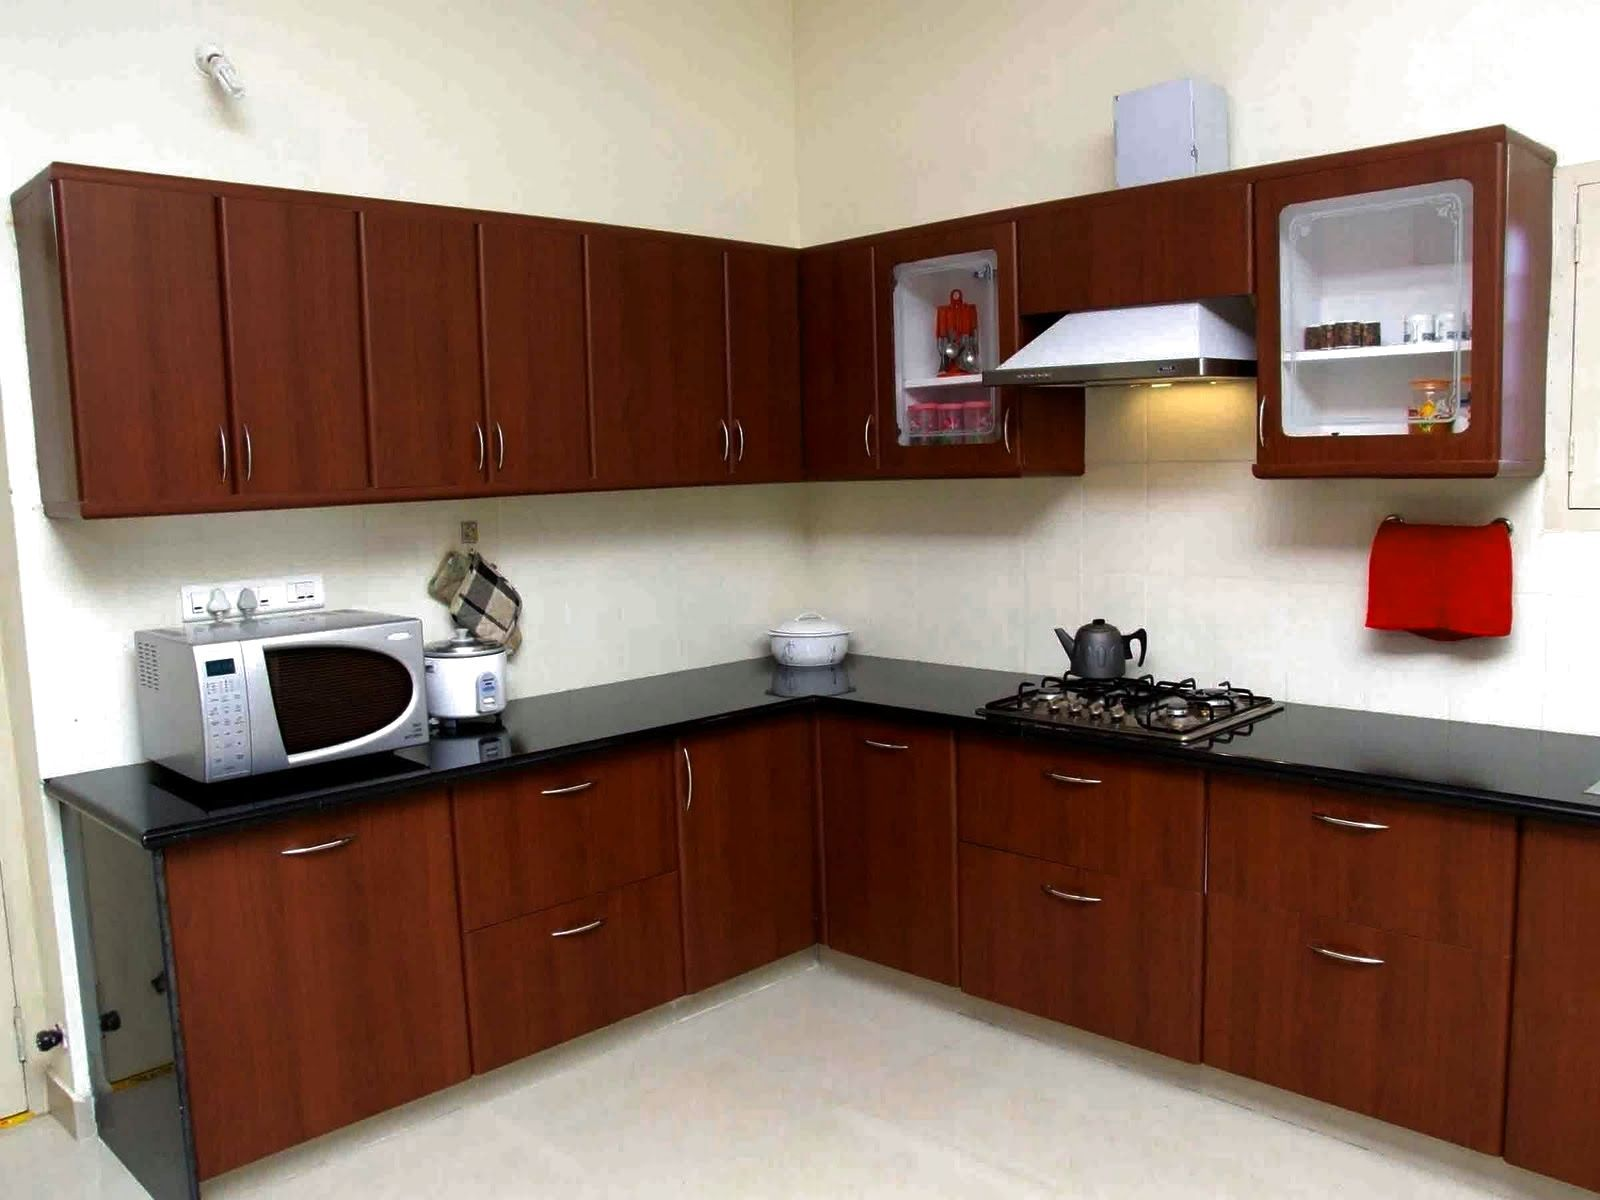 Design kitchen cabinets india ideas kitchen cabinet for Kitchen gallery ideas